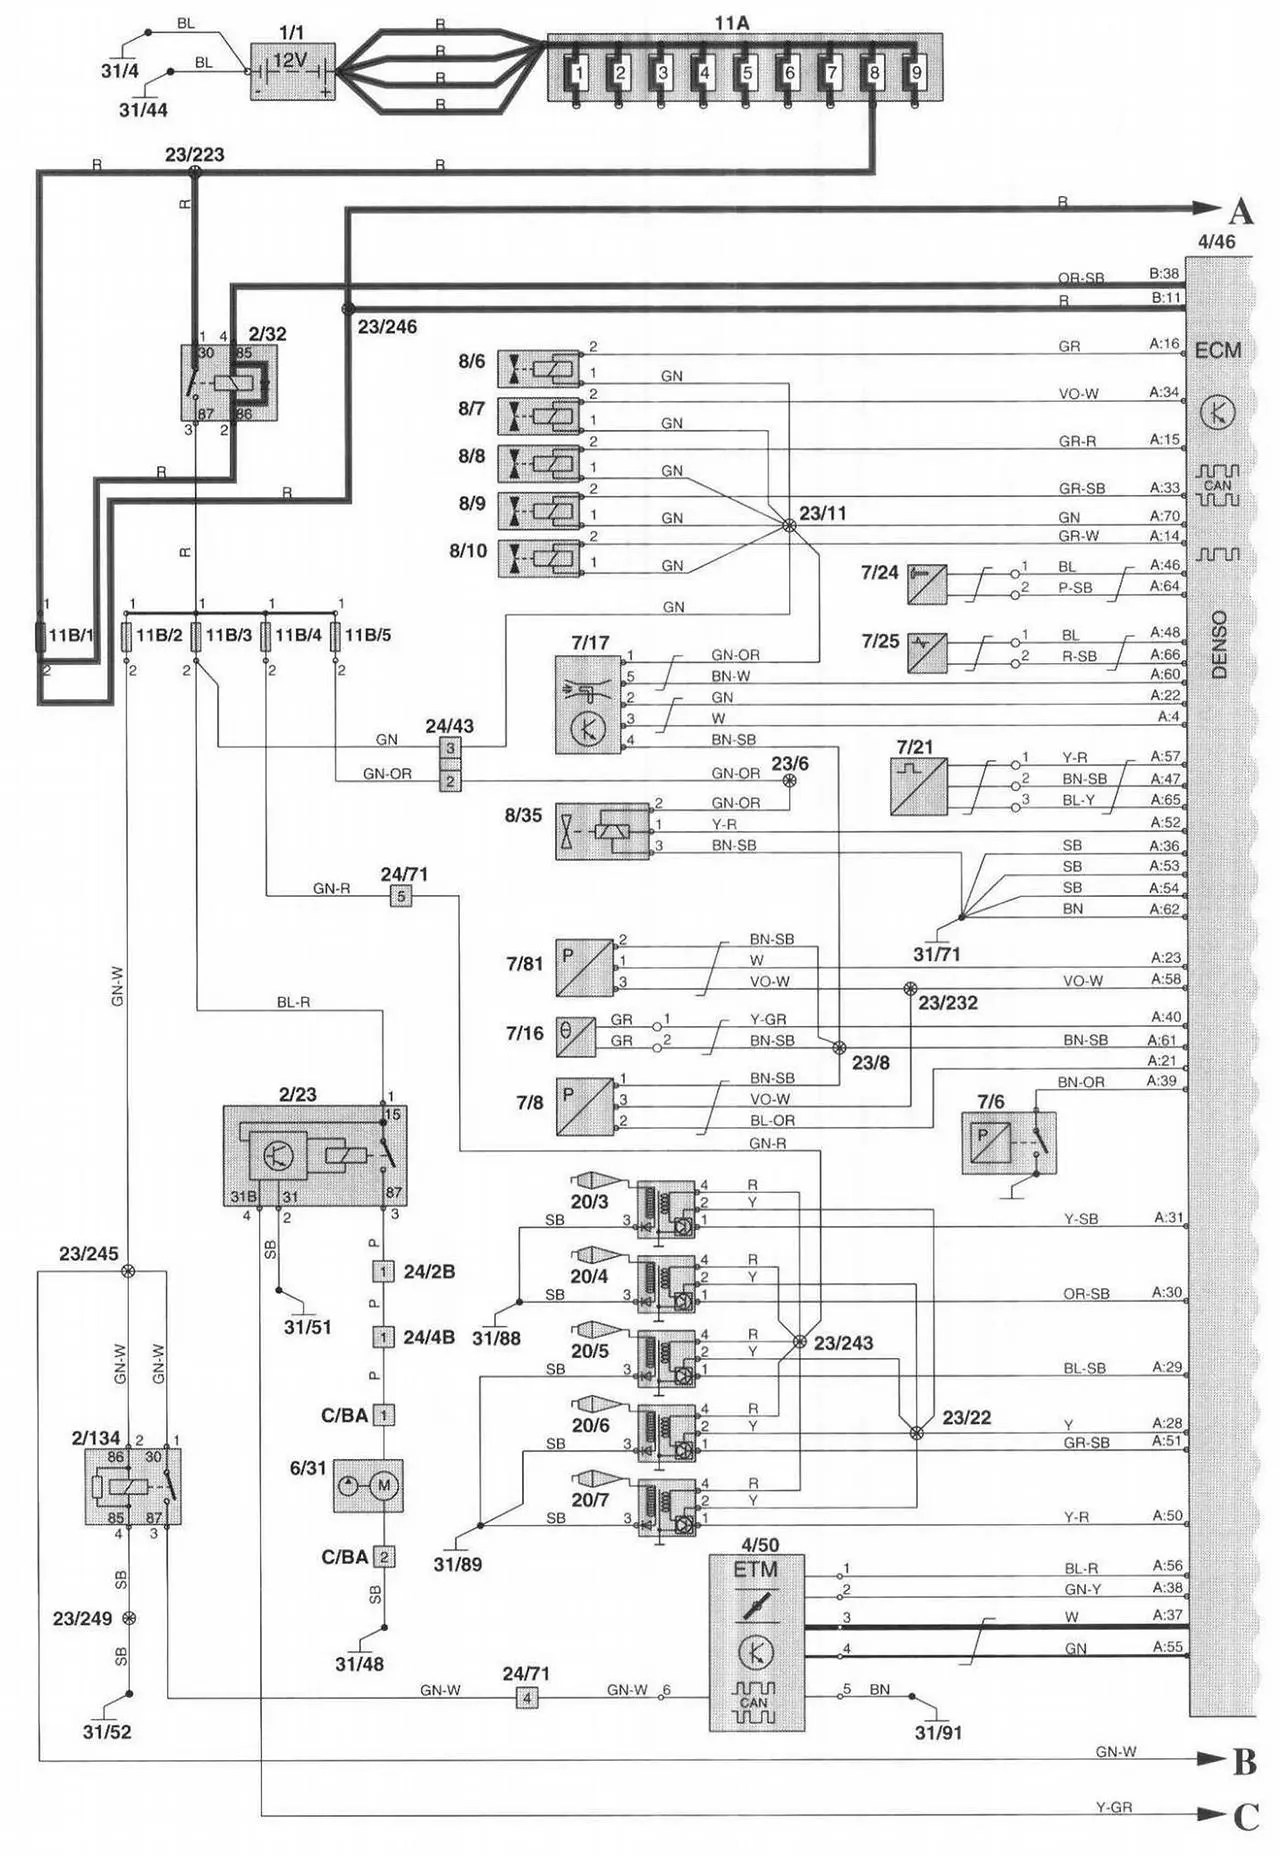 hight resolution of 2003 volvo s80 wiring diagram wiring diagram paper 2003 volvo fuse diagram wiring diagram expert 2003